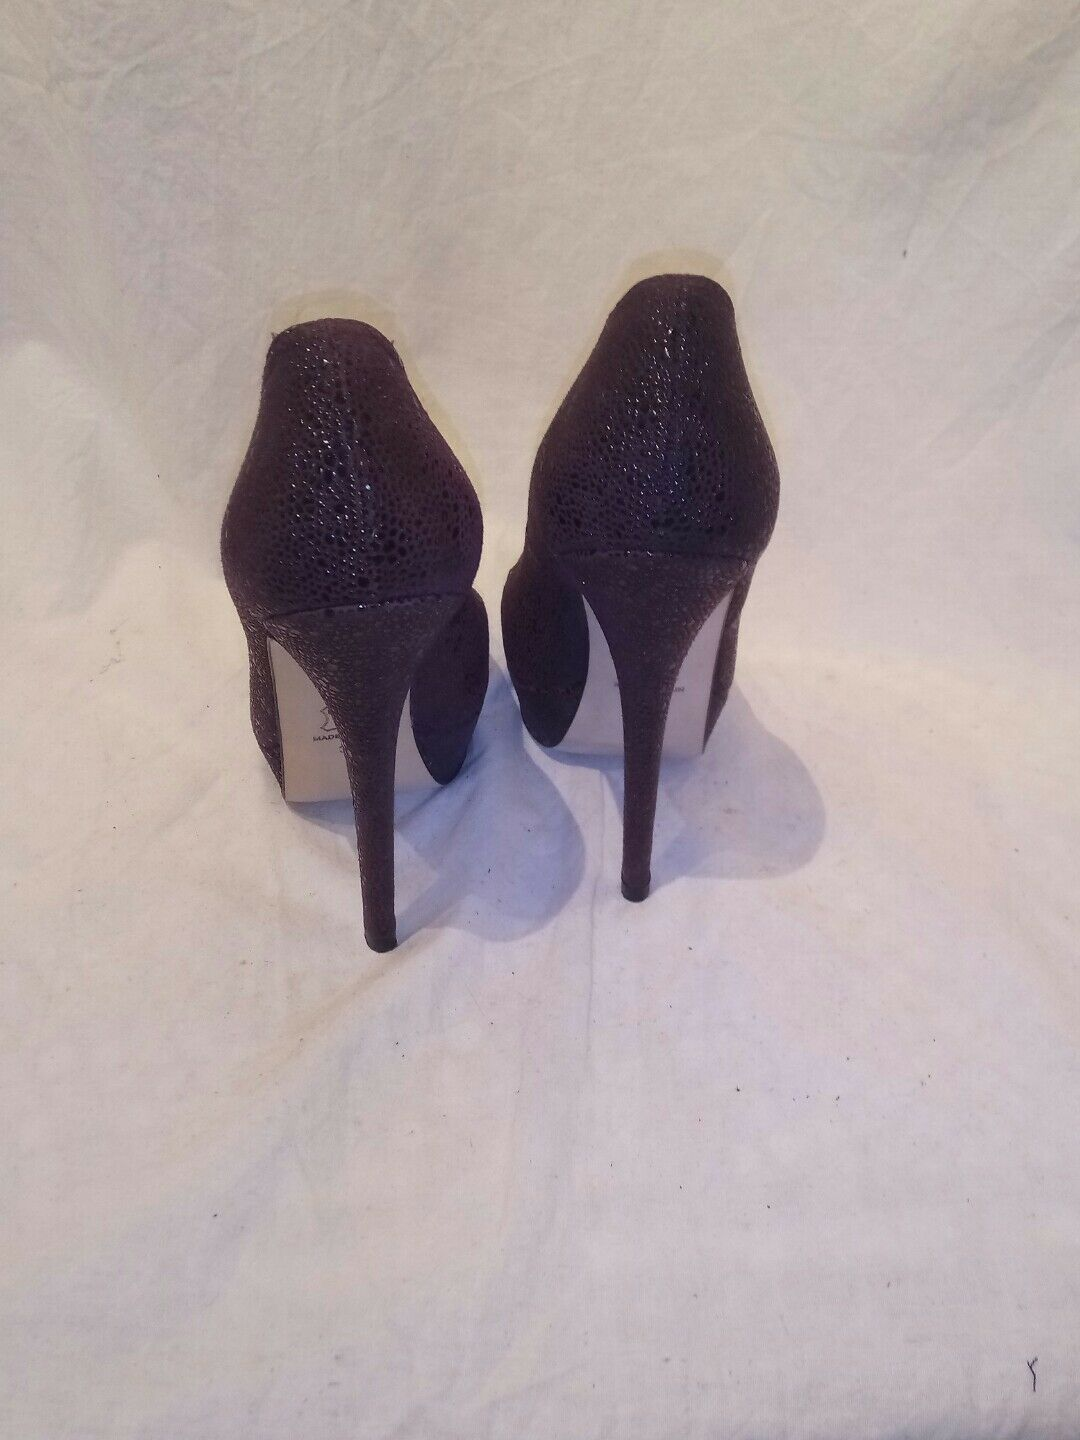 All purple saint spitalfields ladies deep purple All platform heels uk 5 worn once ref 10 7d8536